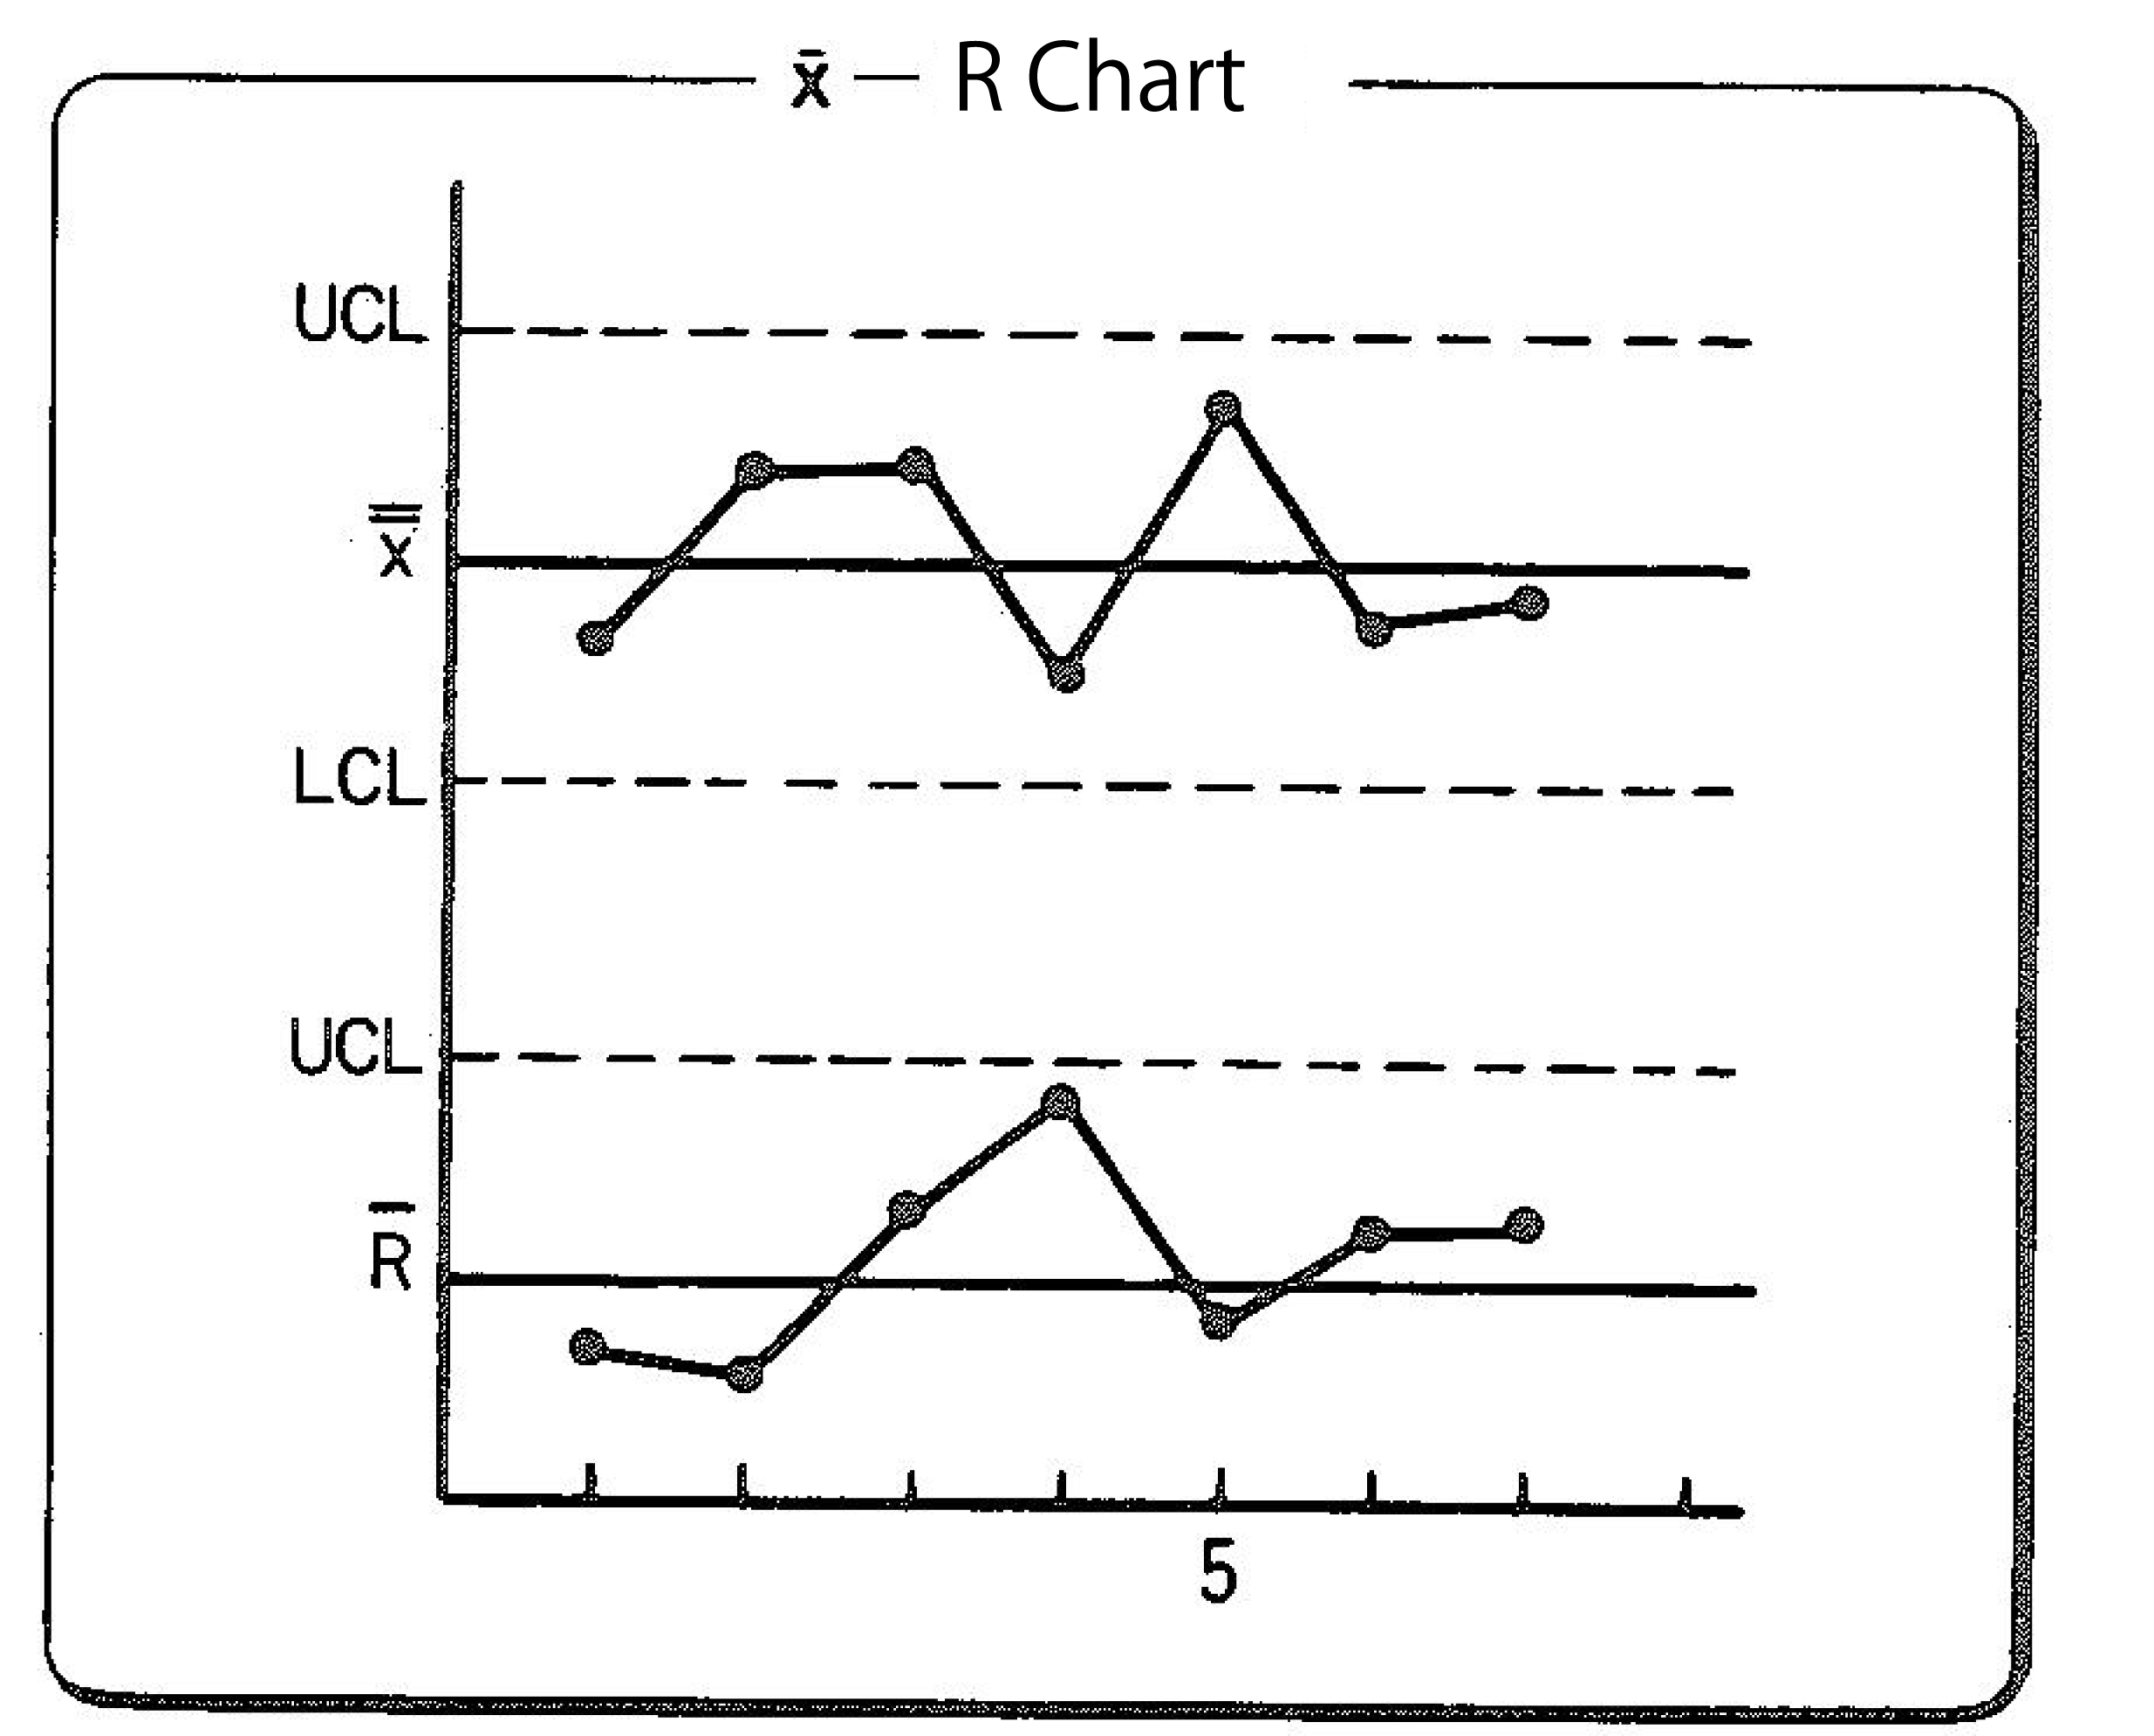 X r chart quality control mrp glossary of production scheduler mrp049 3g related term control chart ccuart Gallery